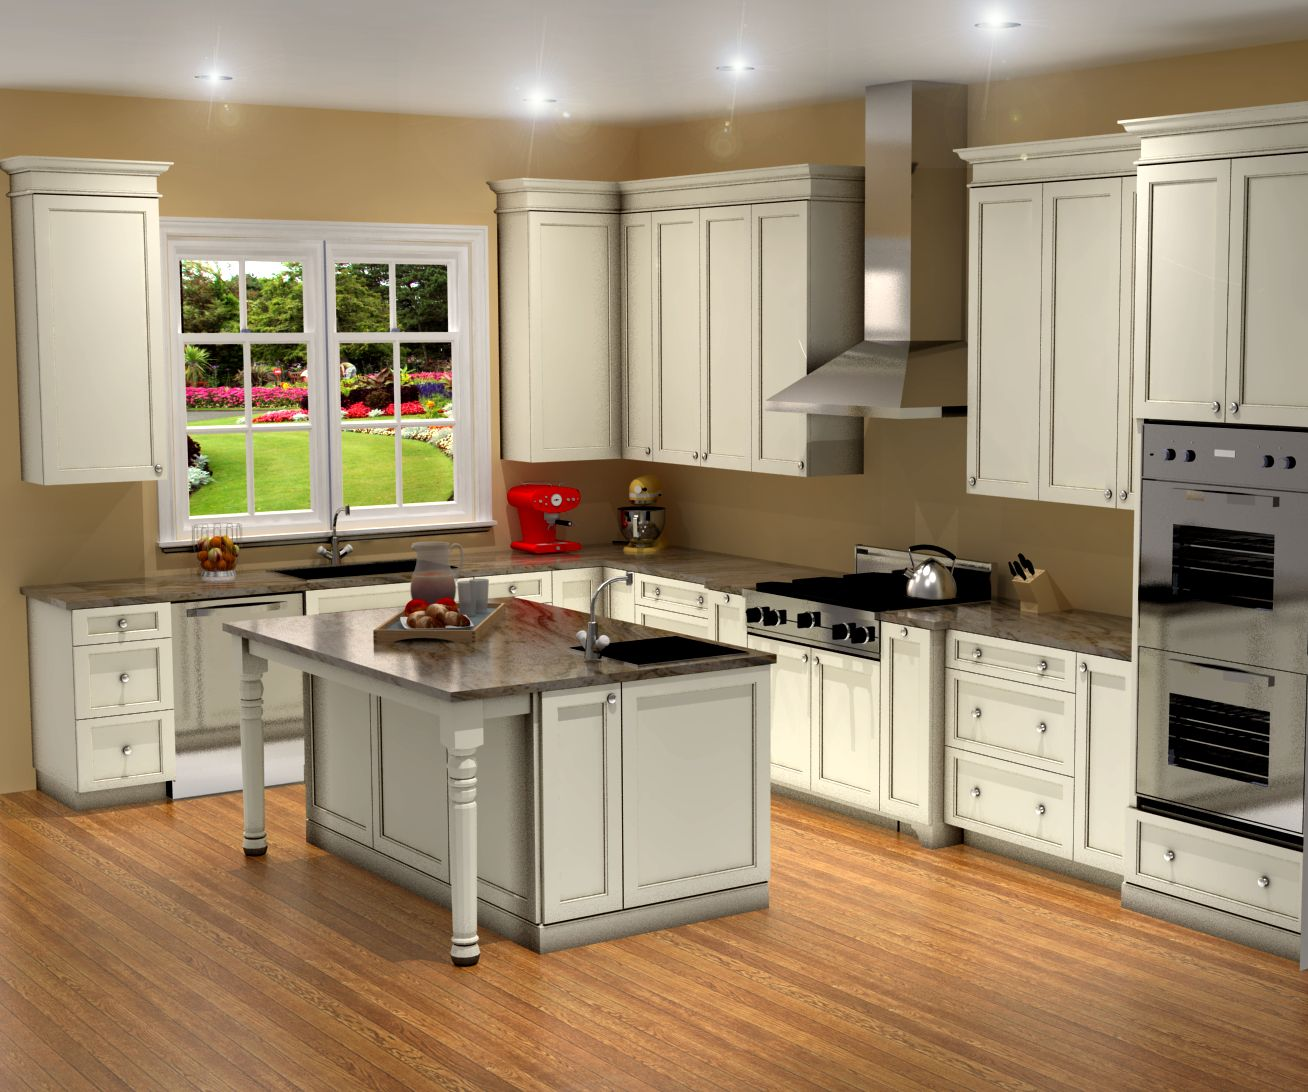 Traditional white kitchen design 3d rendering nick for Kitchen designs images